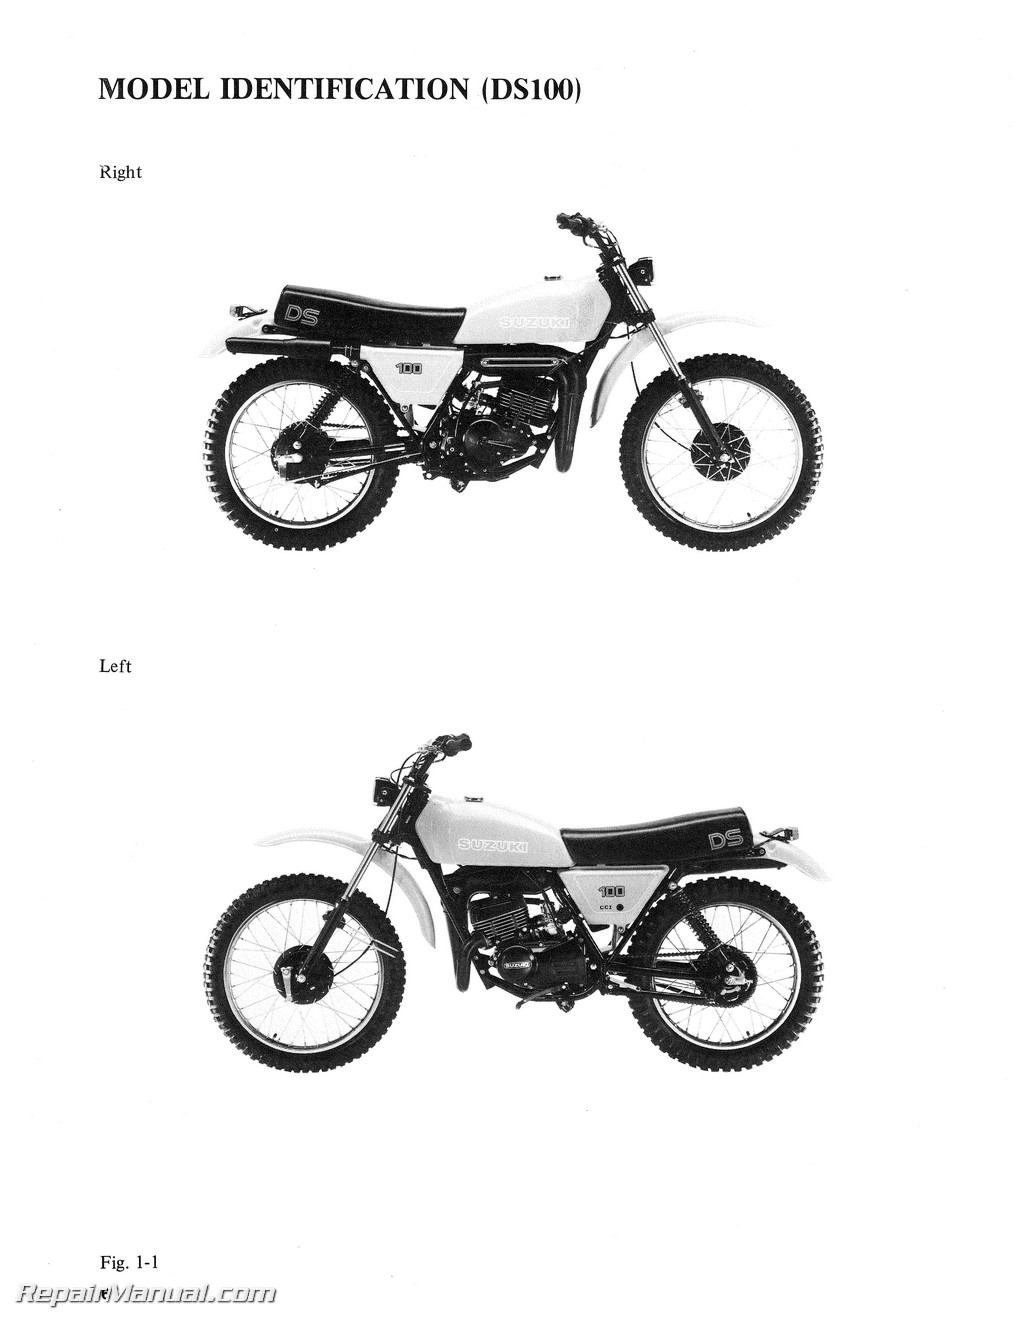 1978-1981 Suzuki DS100 DS125 Motorcycle Service Manual